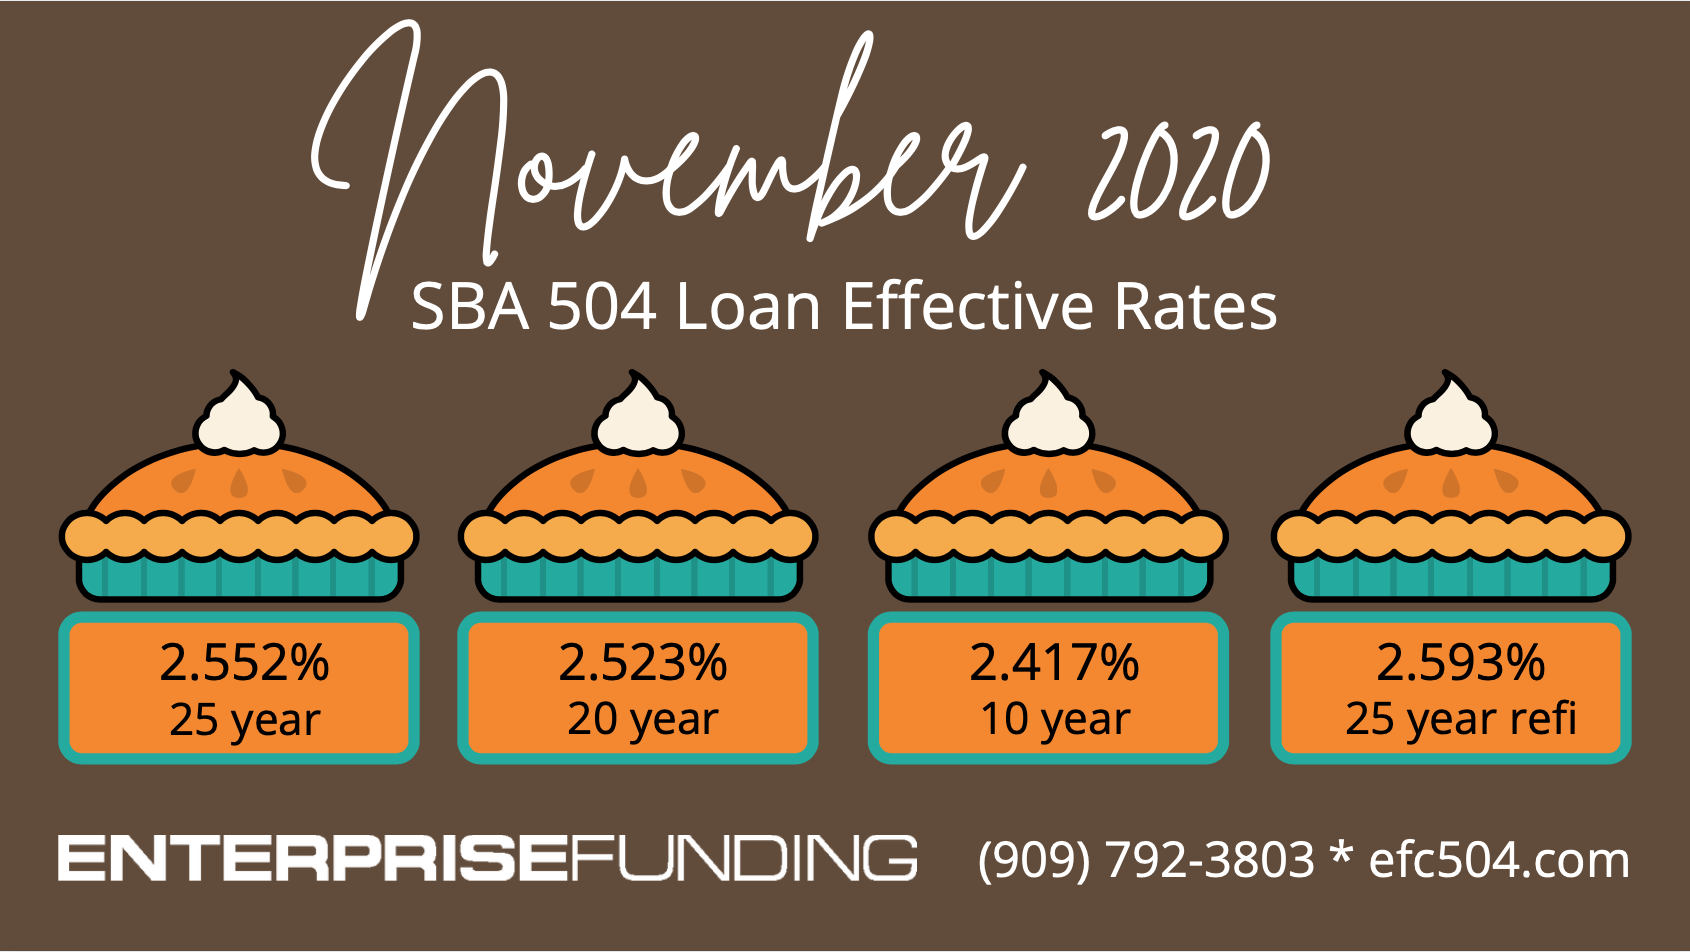 What will you use your #SBA loan for? We can help you finance #commercialrealestate #machinery #equipment #land & other long-term assets. Call us today to discuss your needs! (909) 792-3803 #SmallBusinessLoan #smallbusinessloans #SBA504Loan #SBAFinancing #HighDesert #inlandempire #SouthernCalifornia #commercialmortgage #commerciallender #CaliforniaBusinessLoan